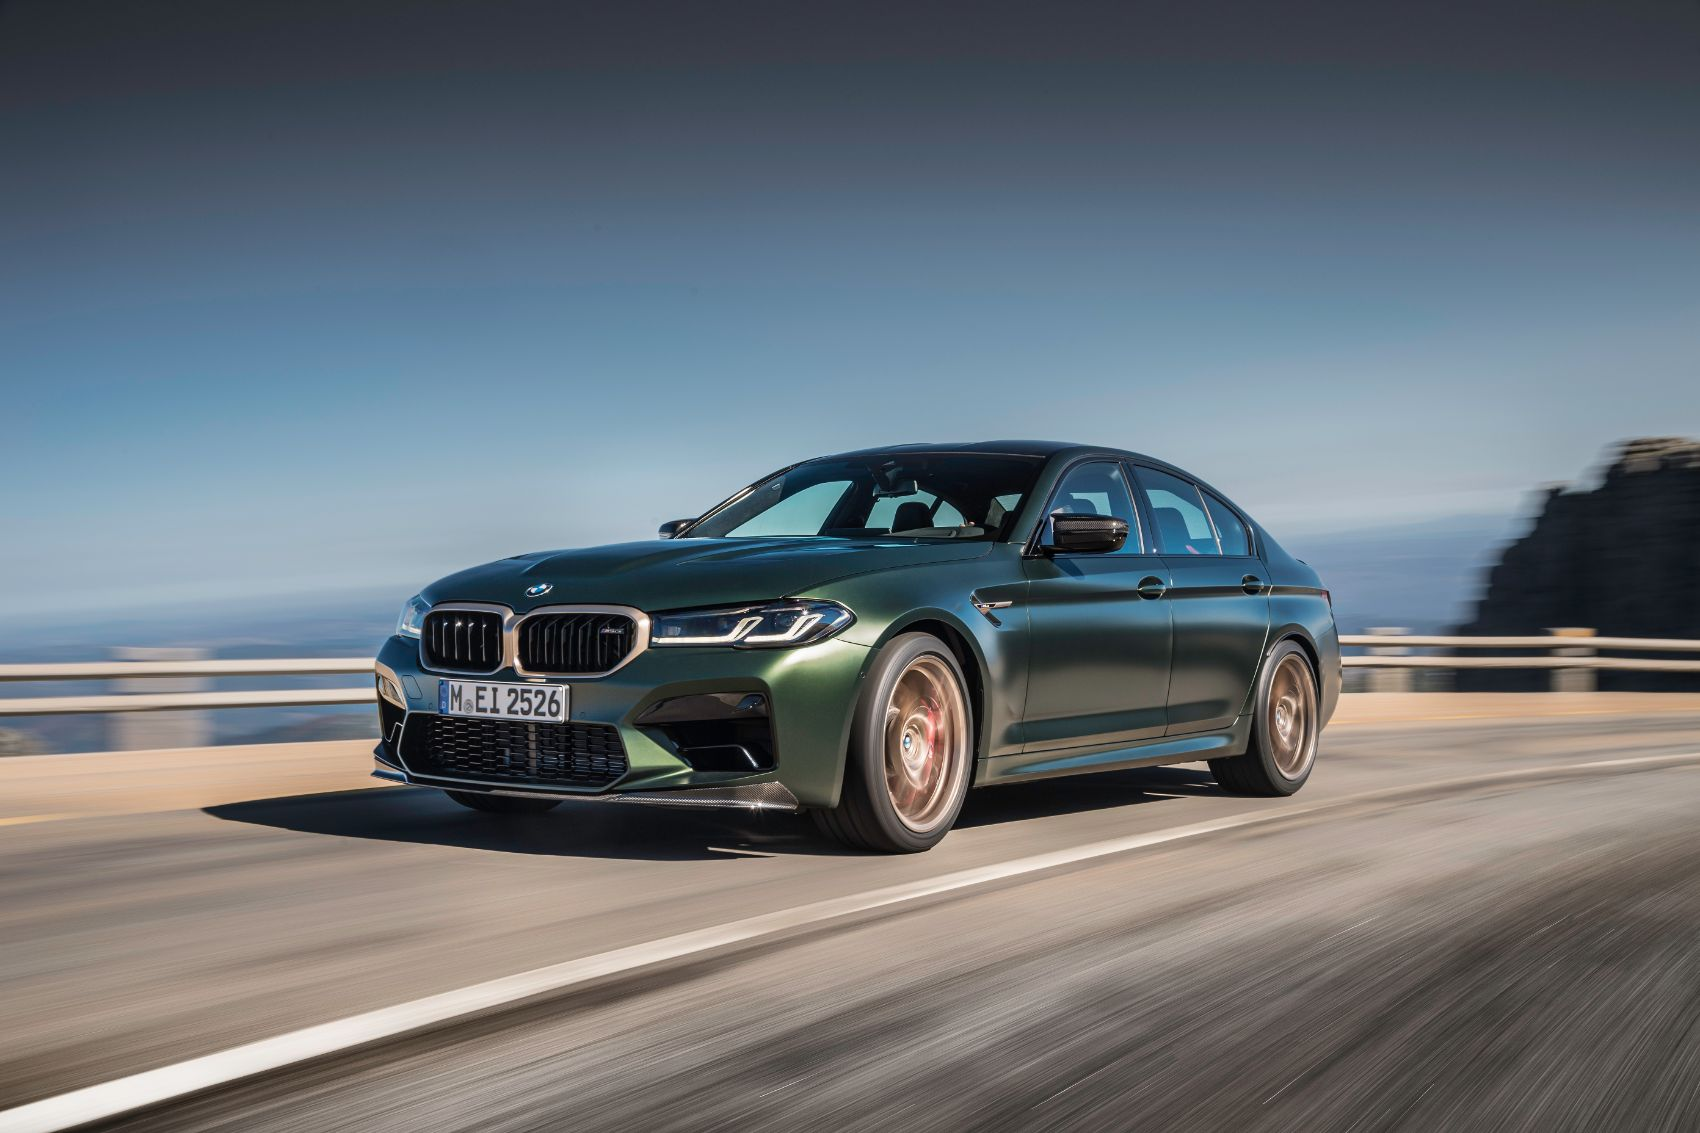 2022 BMW M5 CS Sedan: The Most Powerful BMW Production Vehicle Yet.